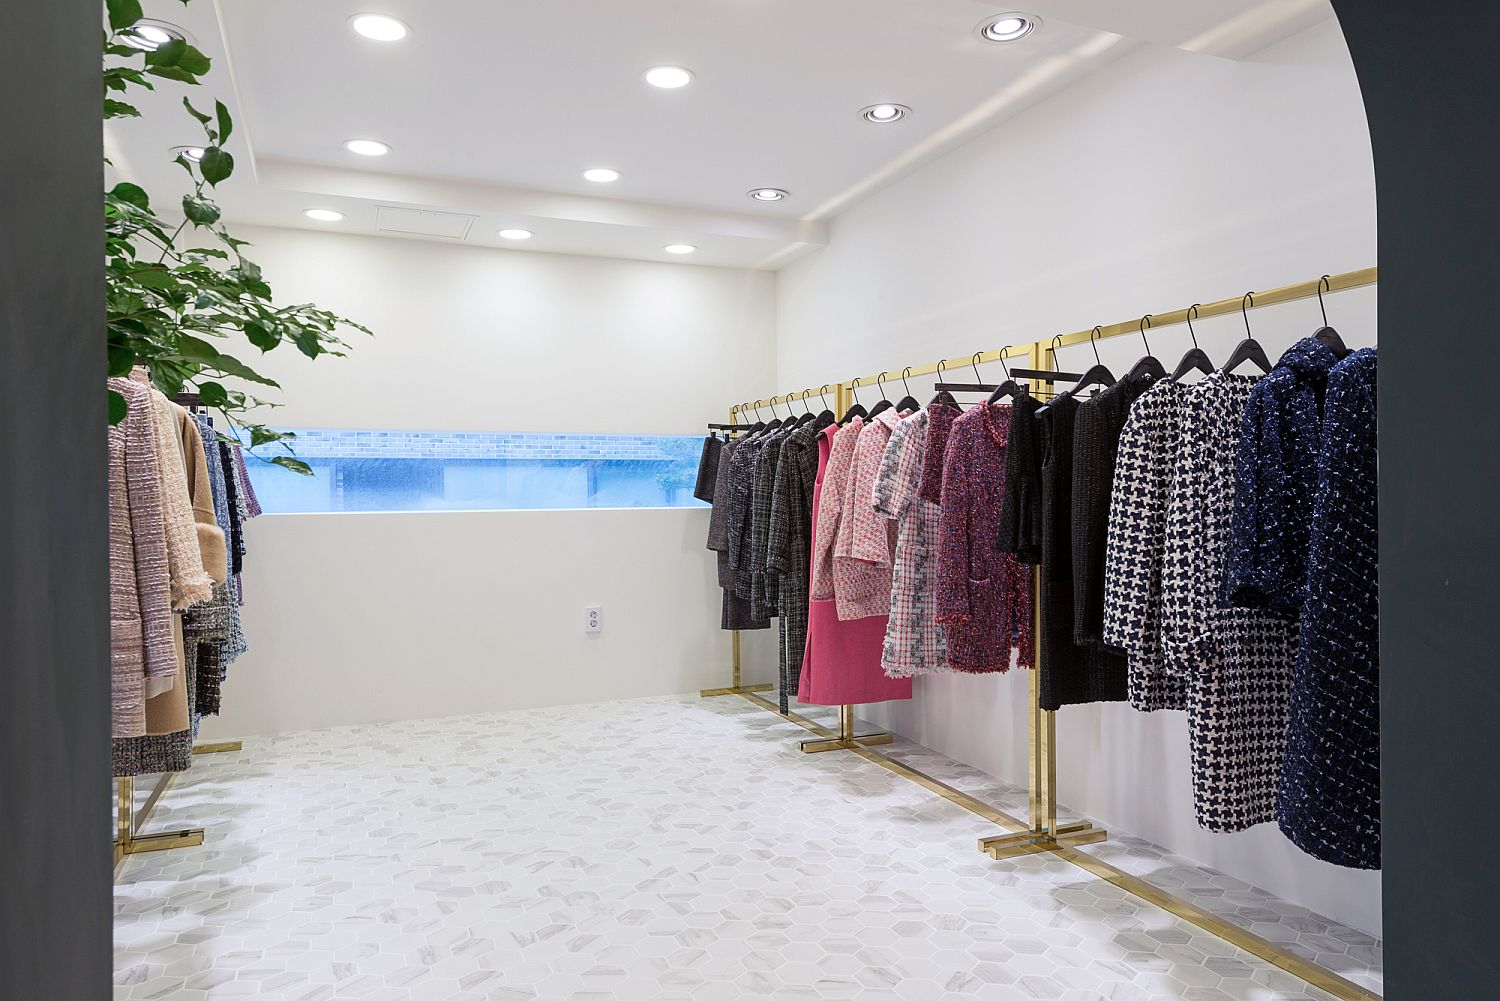 White room of the clothing showroom offers the best of high-end fashion in Korea